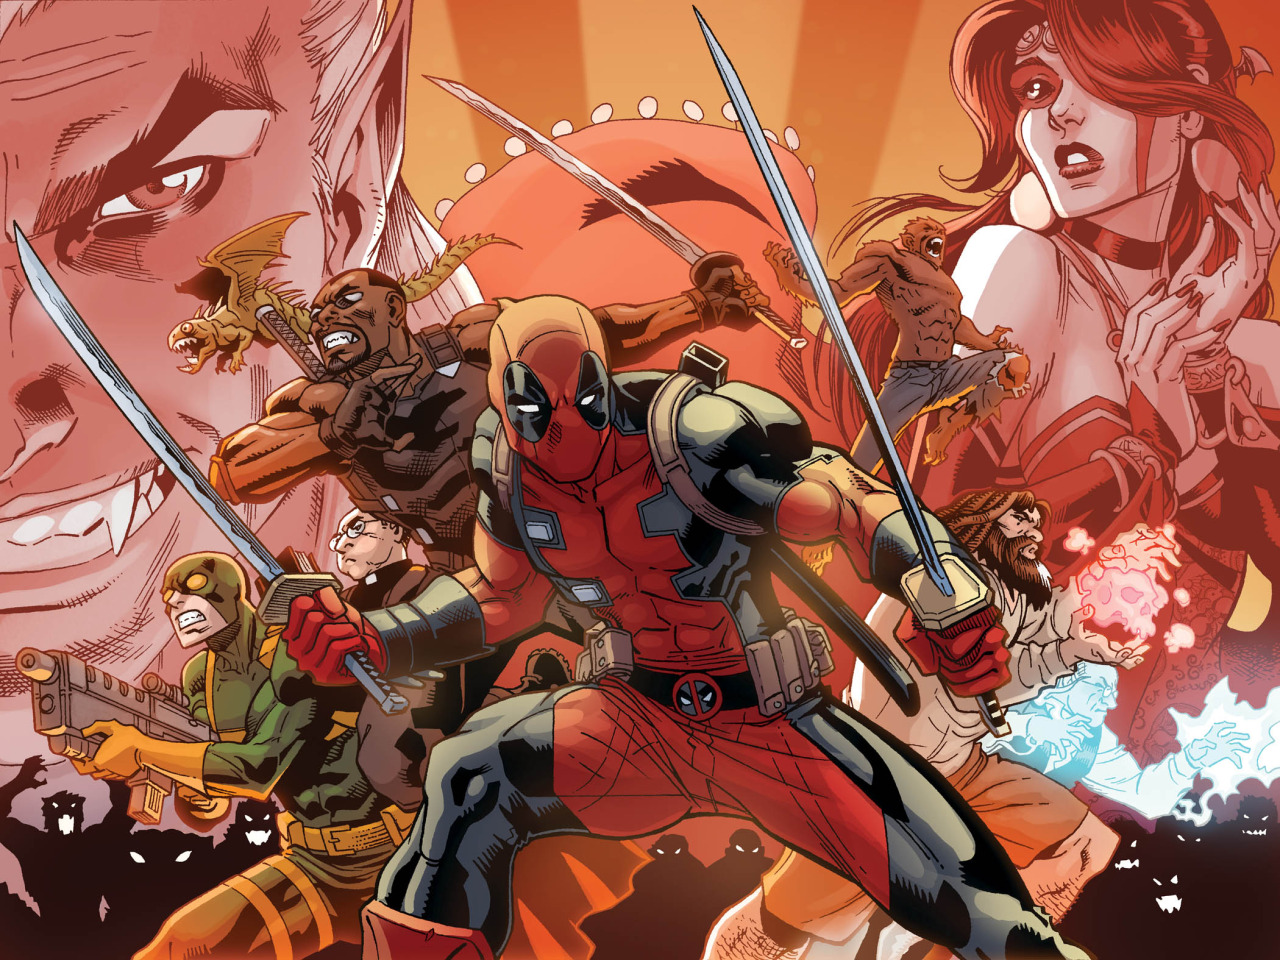 Vampires, succubuses, monsters, werewolves, and, of course Deadpool!  Tomorrow's the day!  Check out Comixology for the final chapter of  Deadpool: The Gauntlet!